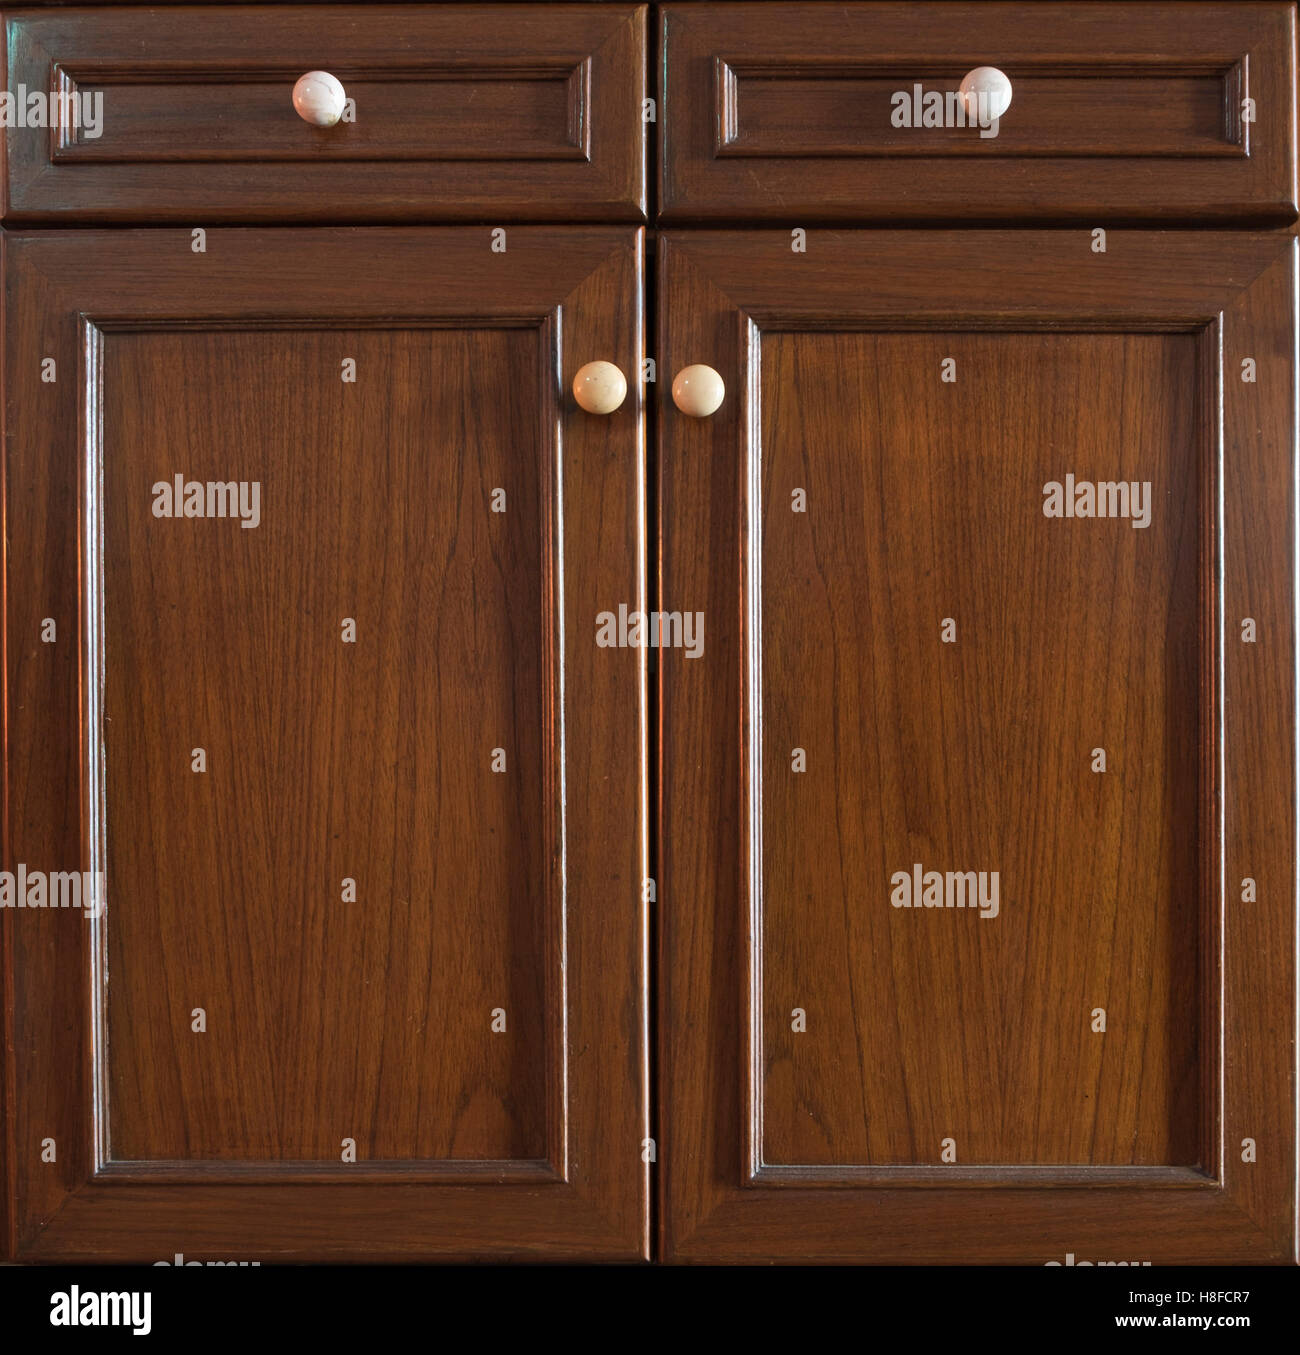 Front Kitchen Wooden Frame Cabinet Door And Drawers Made From Dark Wood,  Background And Texture